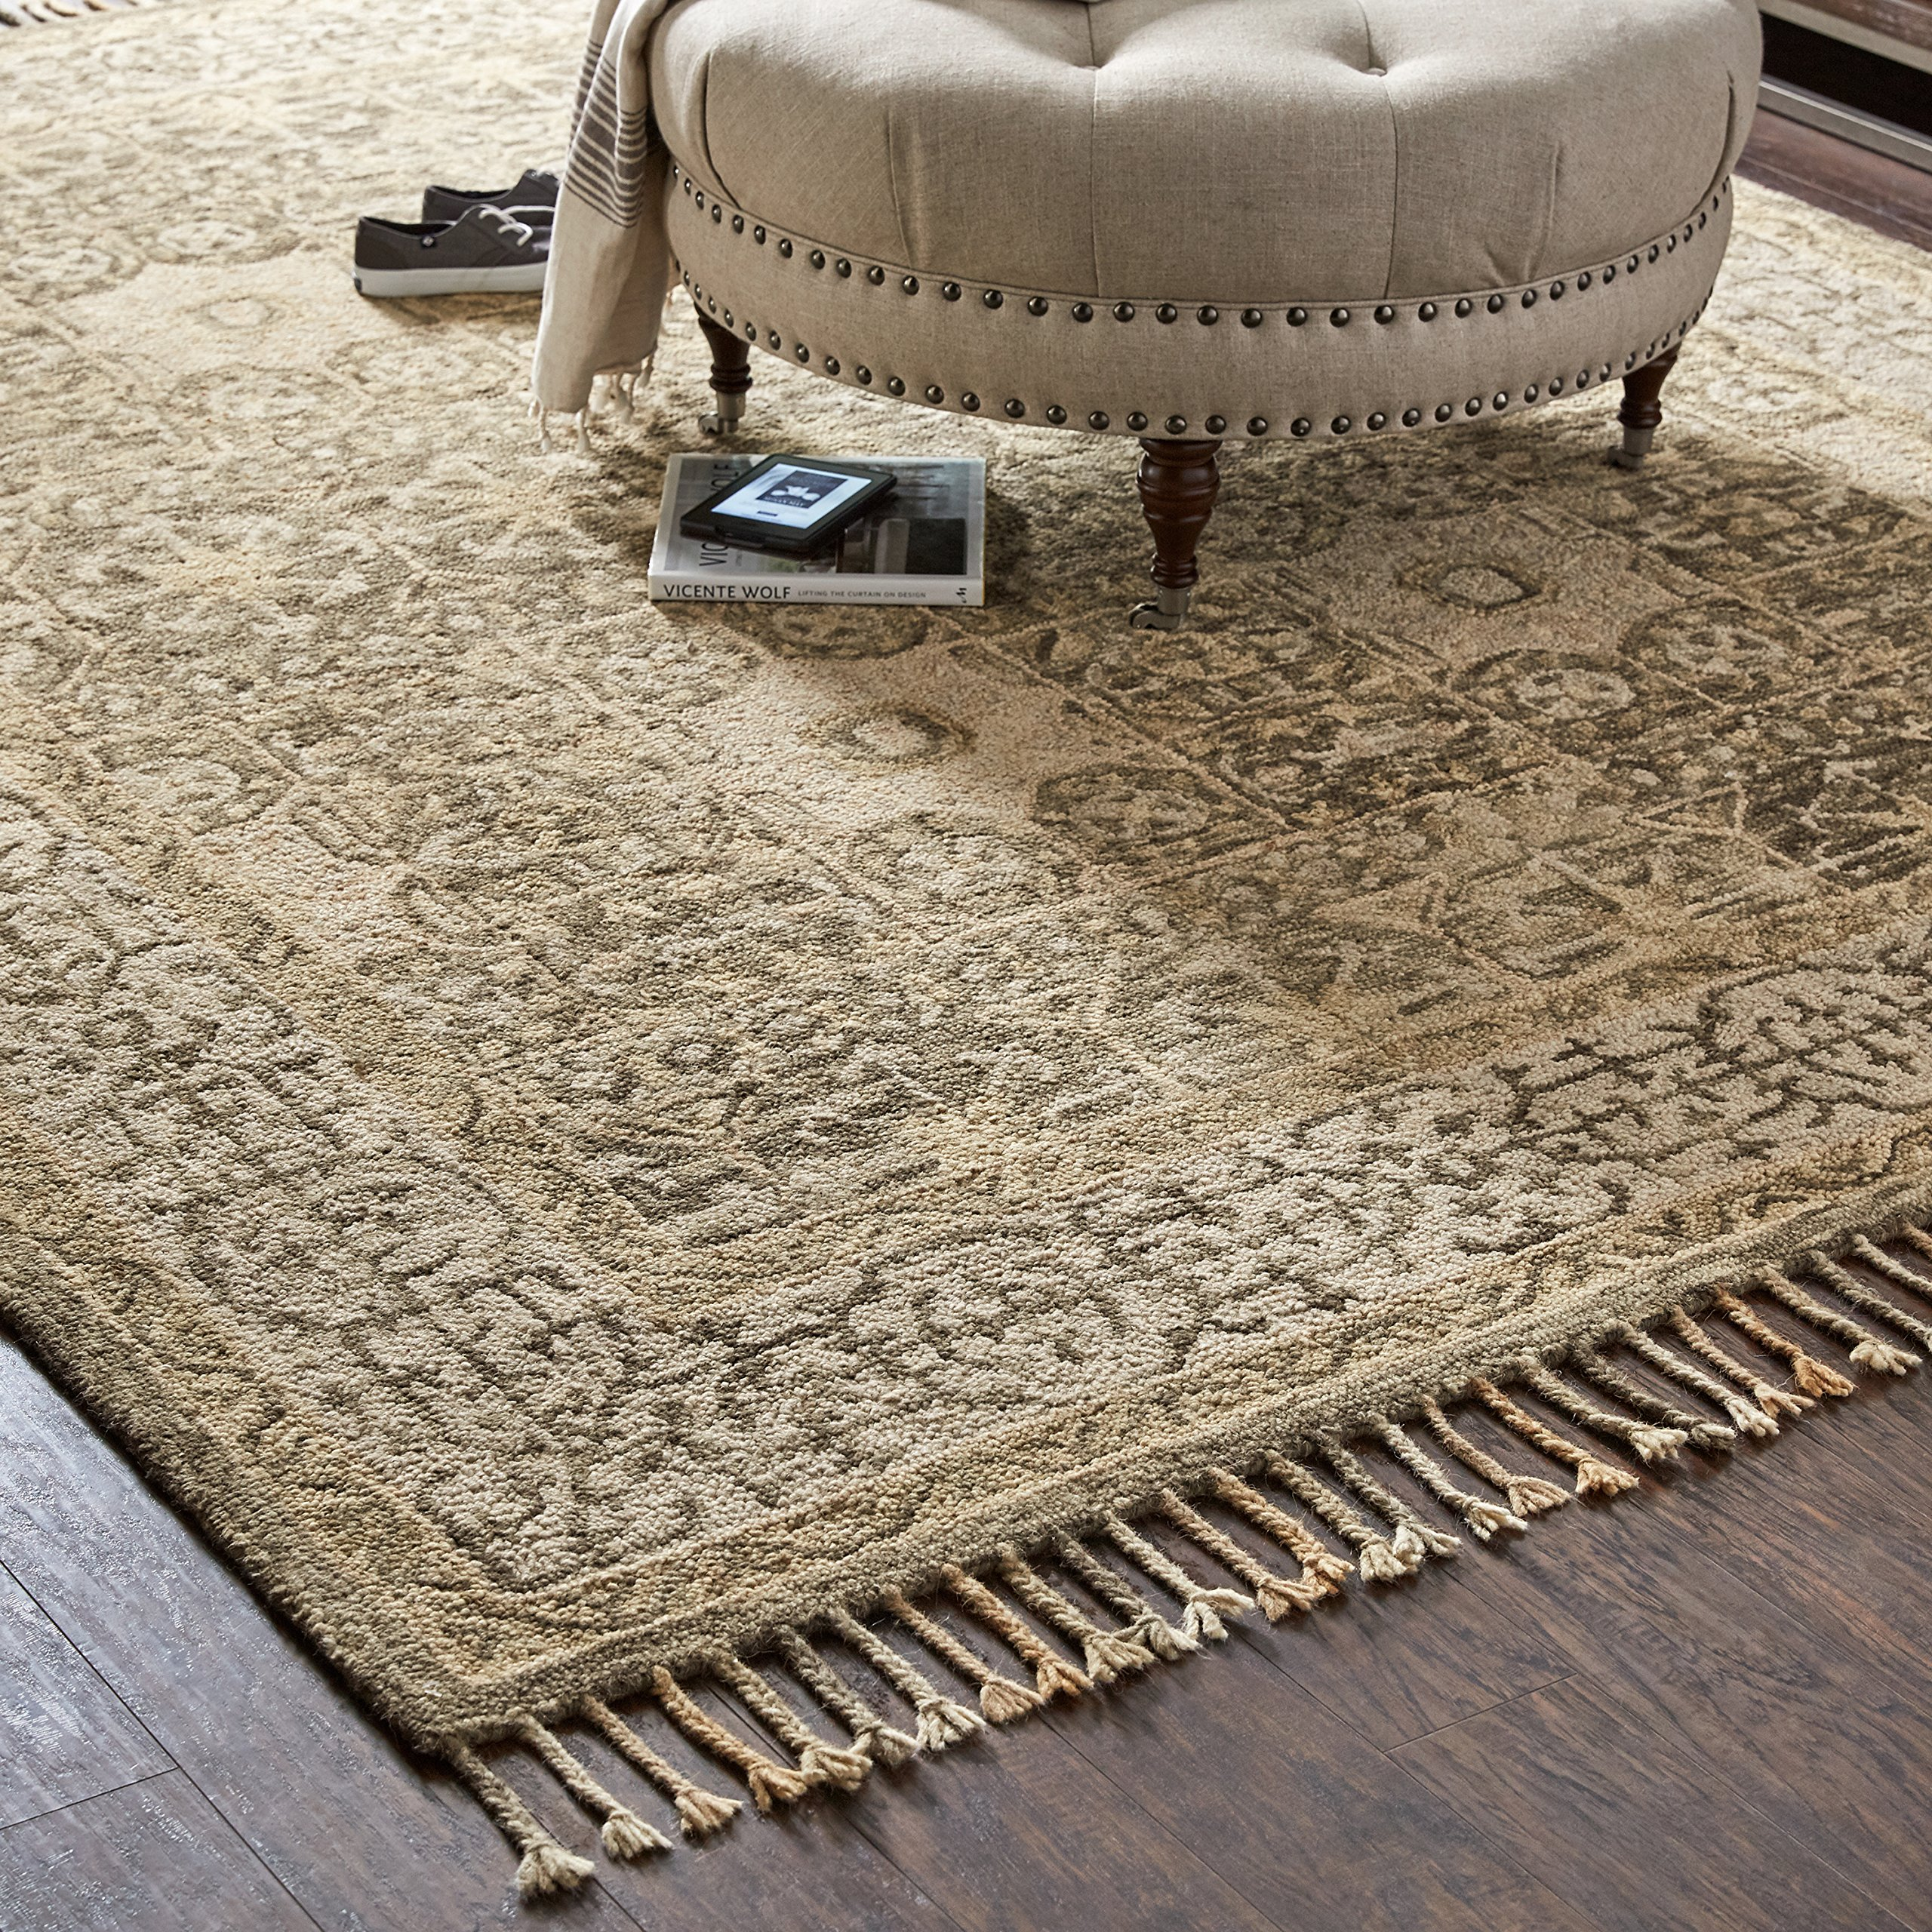 Stone & Beam Kelsea Transitional Wool Area Rug, 8' x 10', Beige and Grey by Stone & Beam (Image #3)